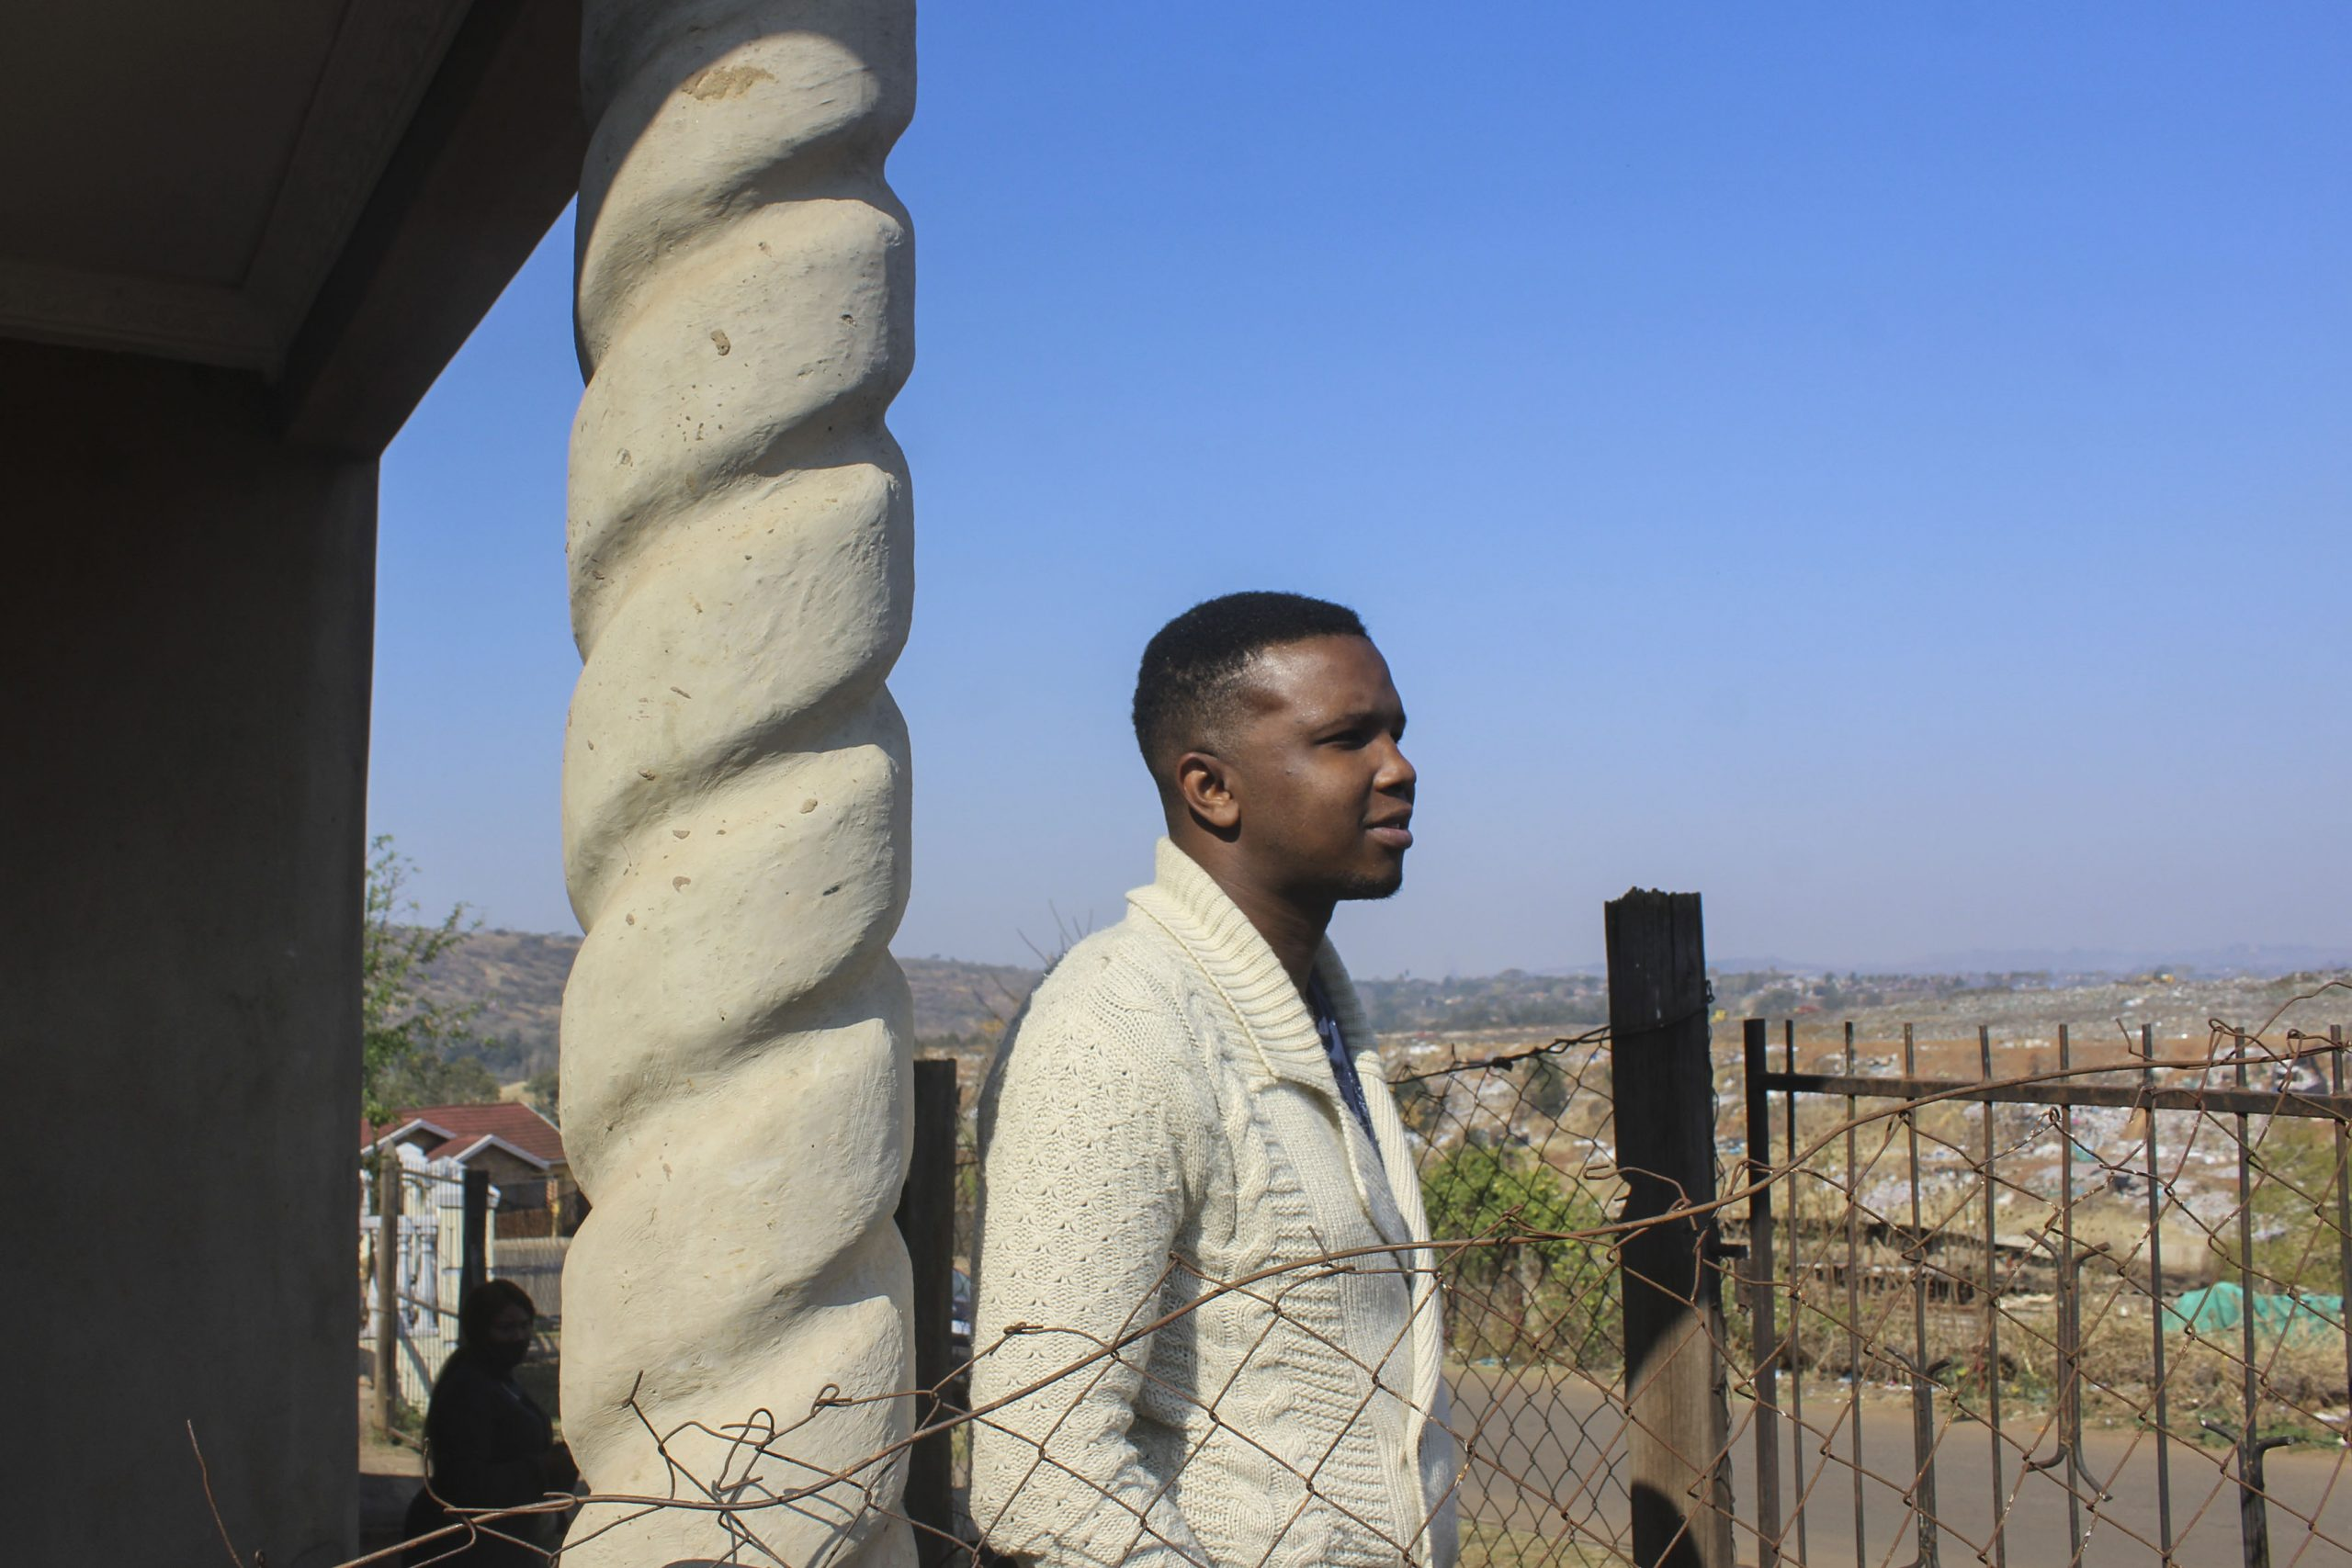 28 July 2020: For nearly 30 years, Collin Memela has watched the rubbish at Pietermaritzburg's main municipal dump pile up into a mountain in front of his house in Sobantu Village. (Photograph by Tony Carnie)